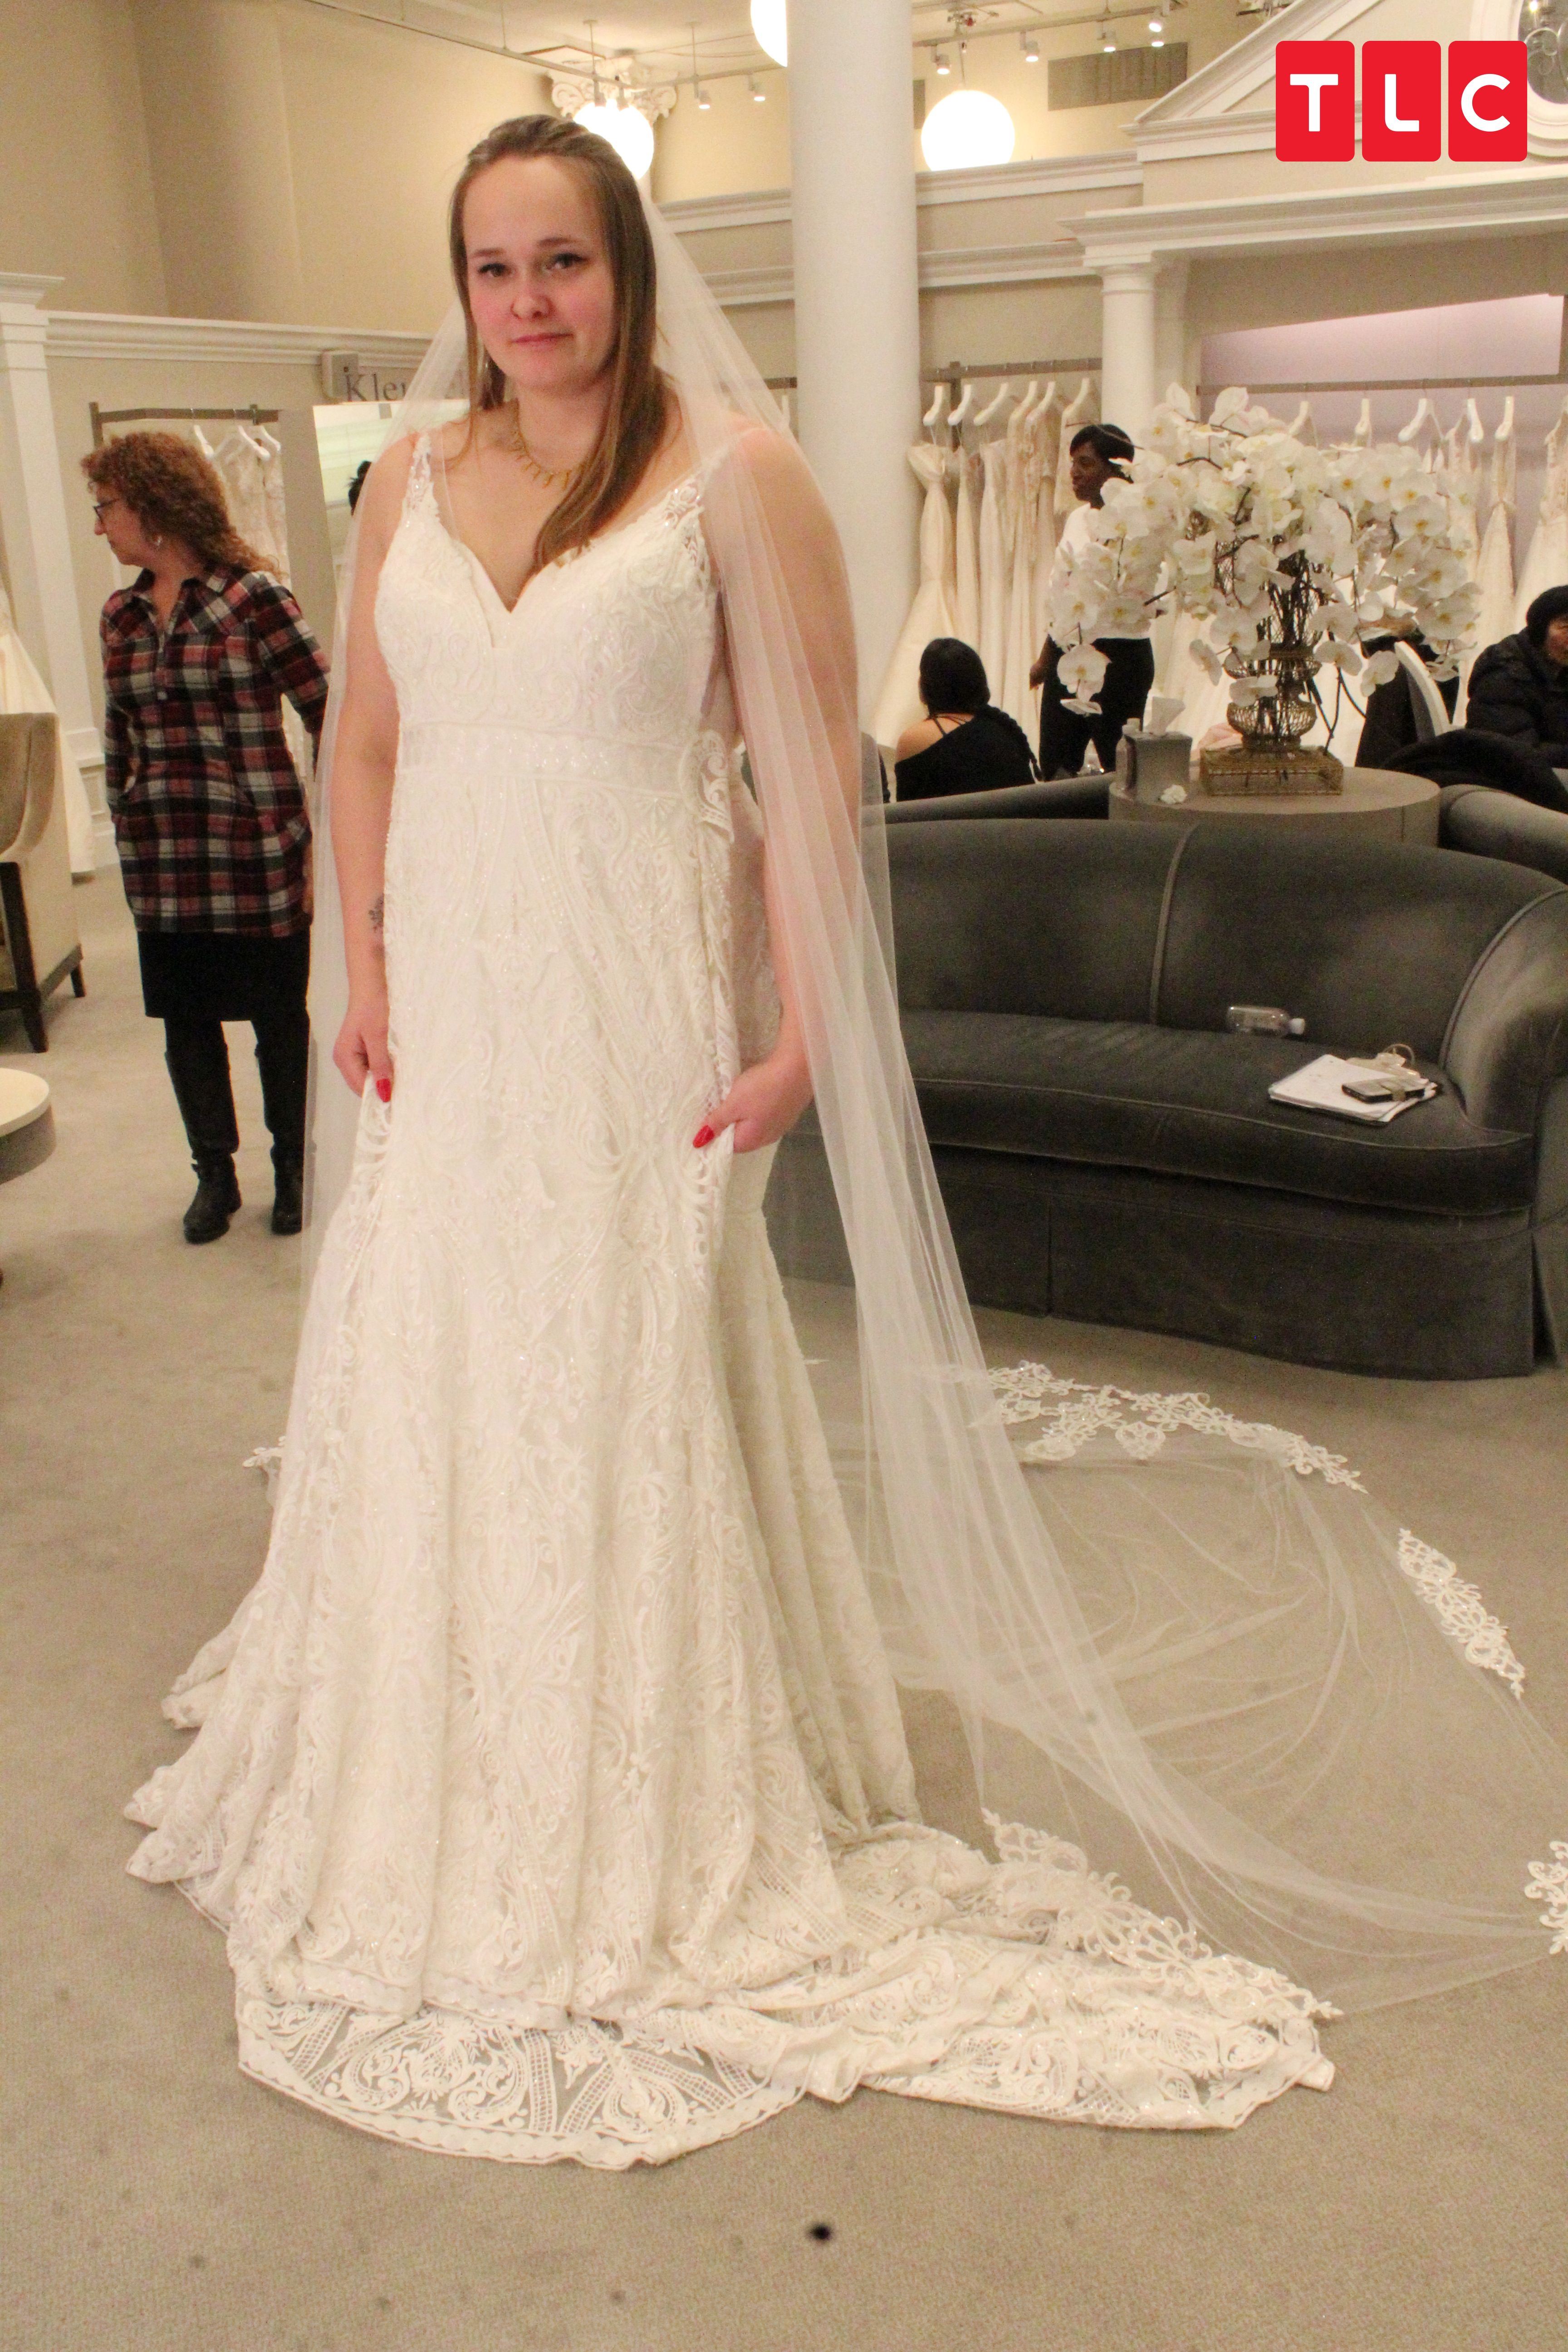 Wedding Dresses Atlanta.Official Site Looking Back Say Yes To The Dress Ny Atlanta